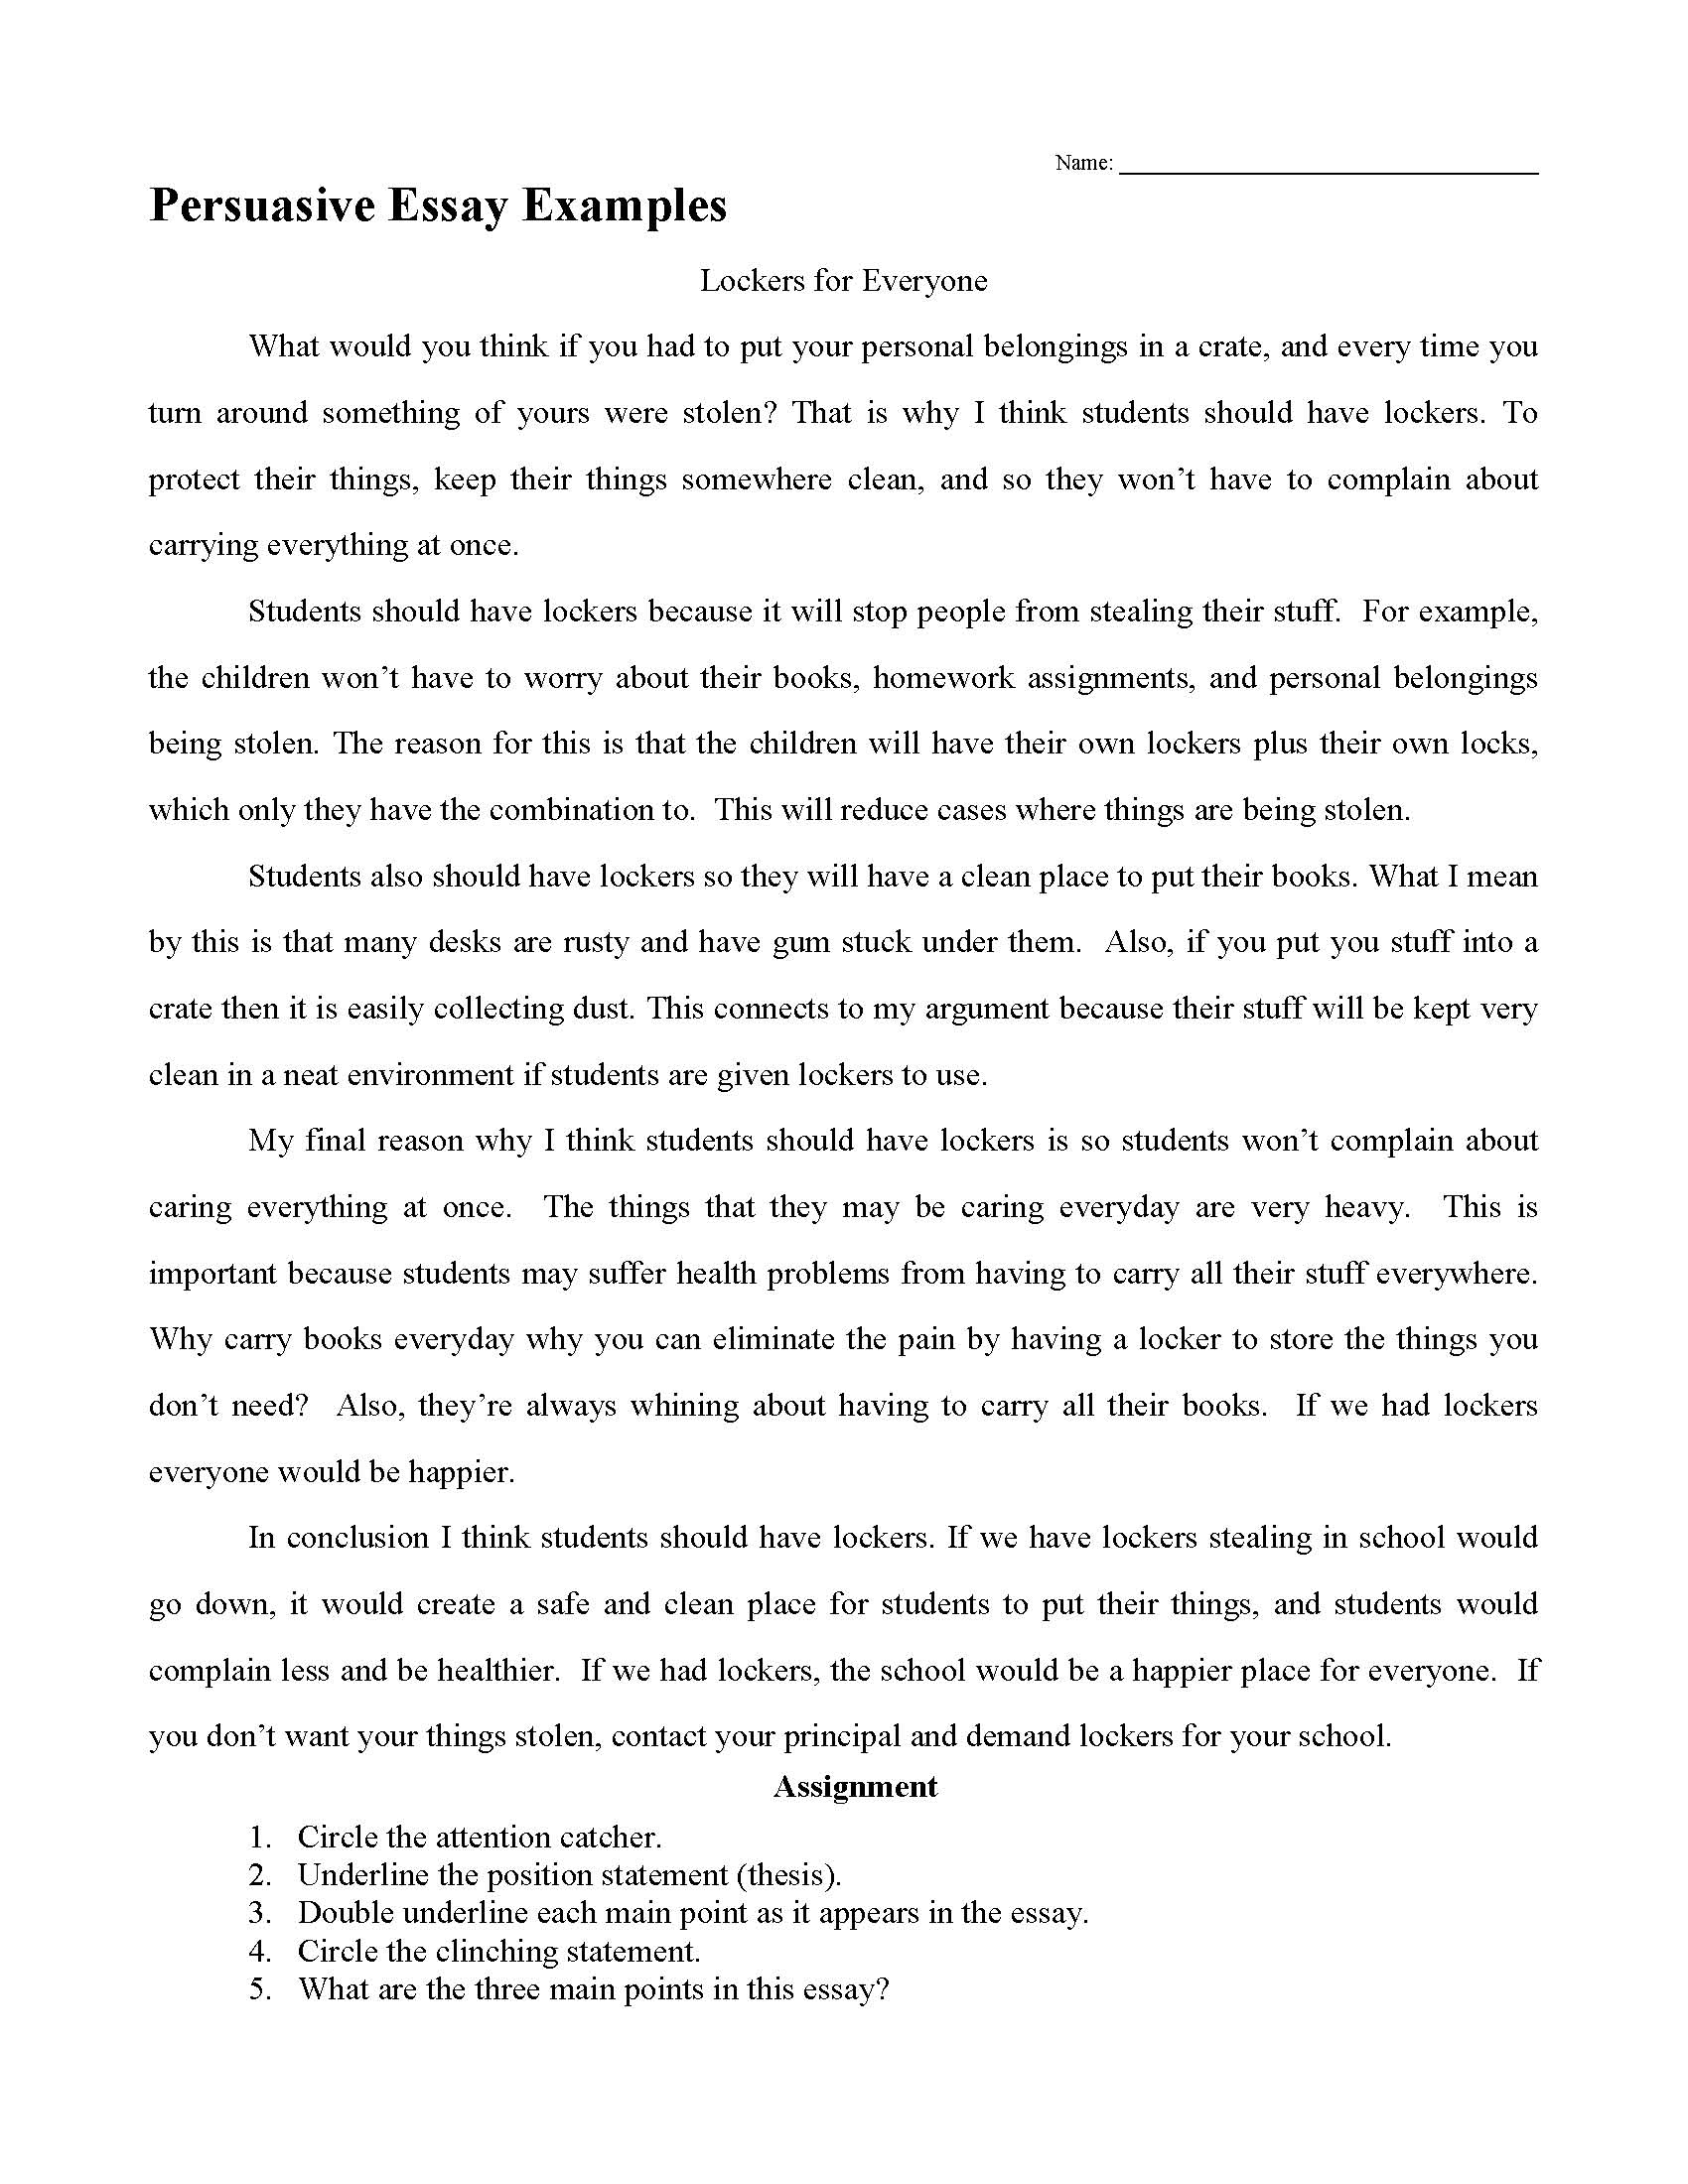 016 Research Paper Persuasive Essay Examples Unforgettable Empire Reviews Full